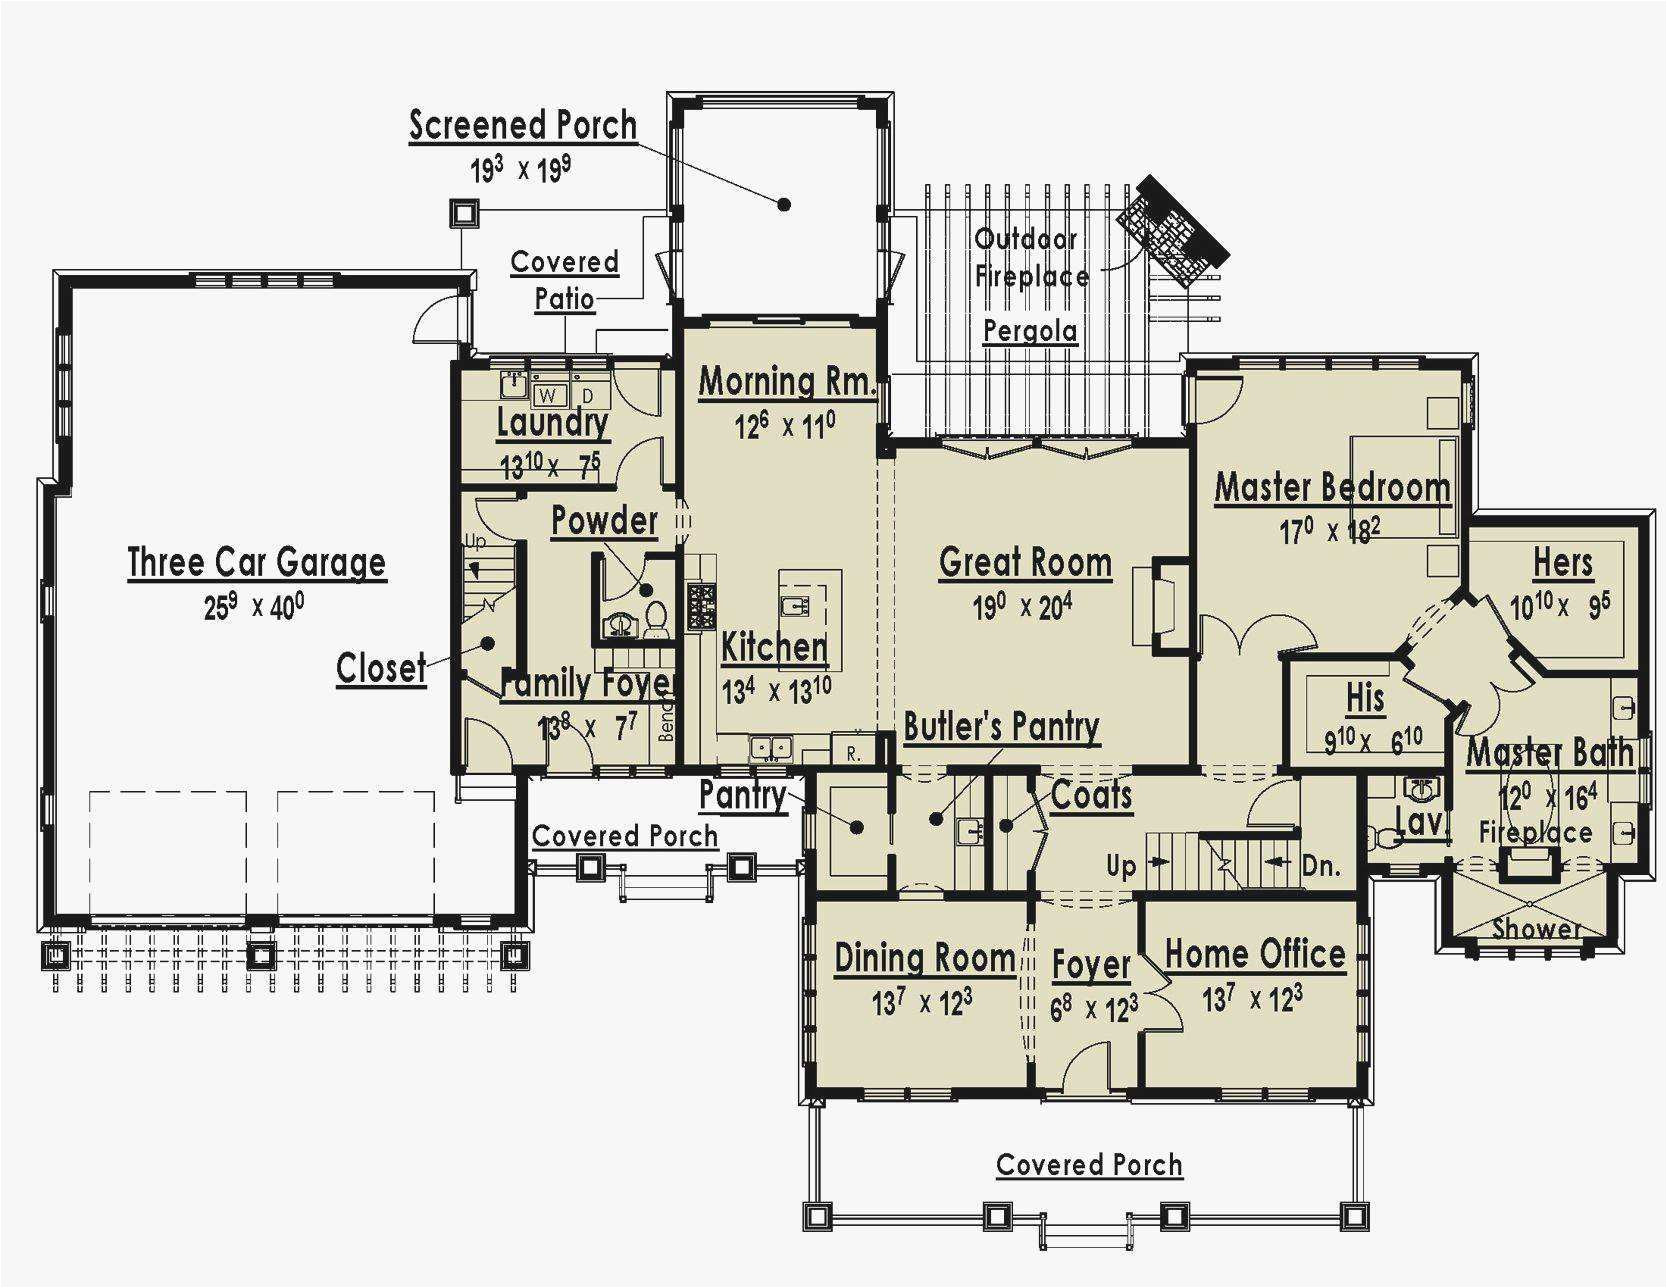 Single Story Home Plans with Two Master Suites 5 Bedroom House Plans with 2 Master Suites Inspirational